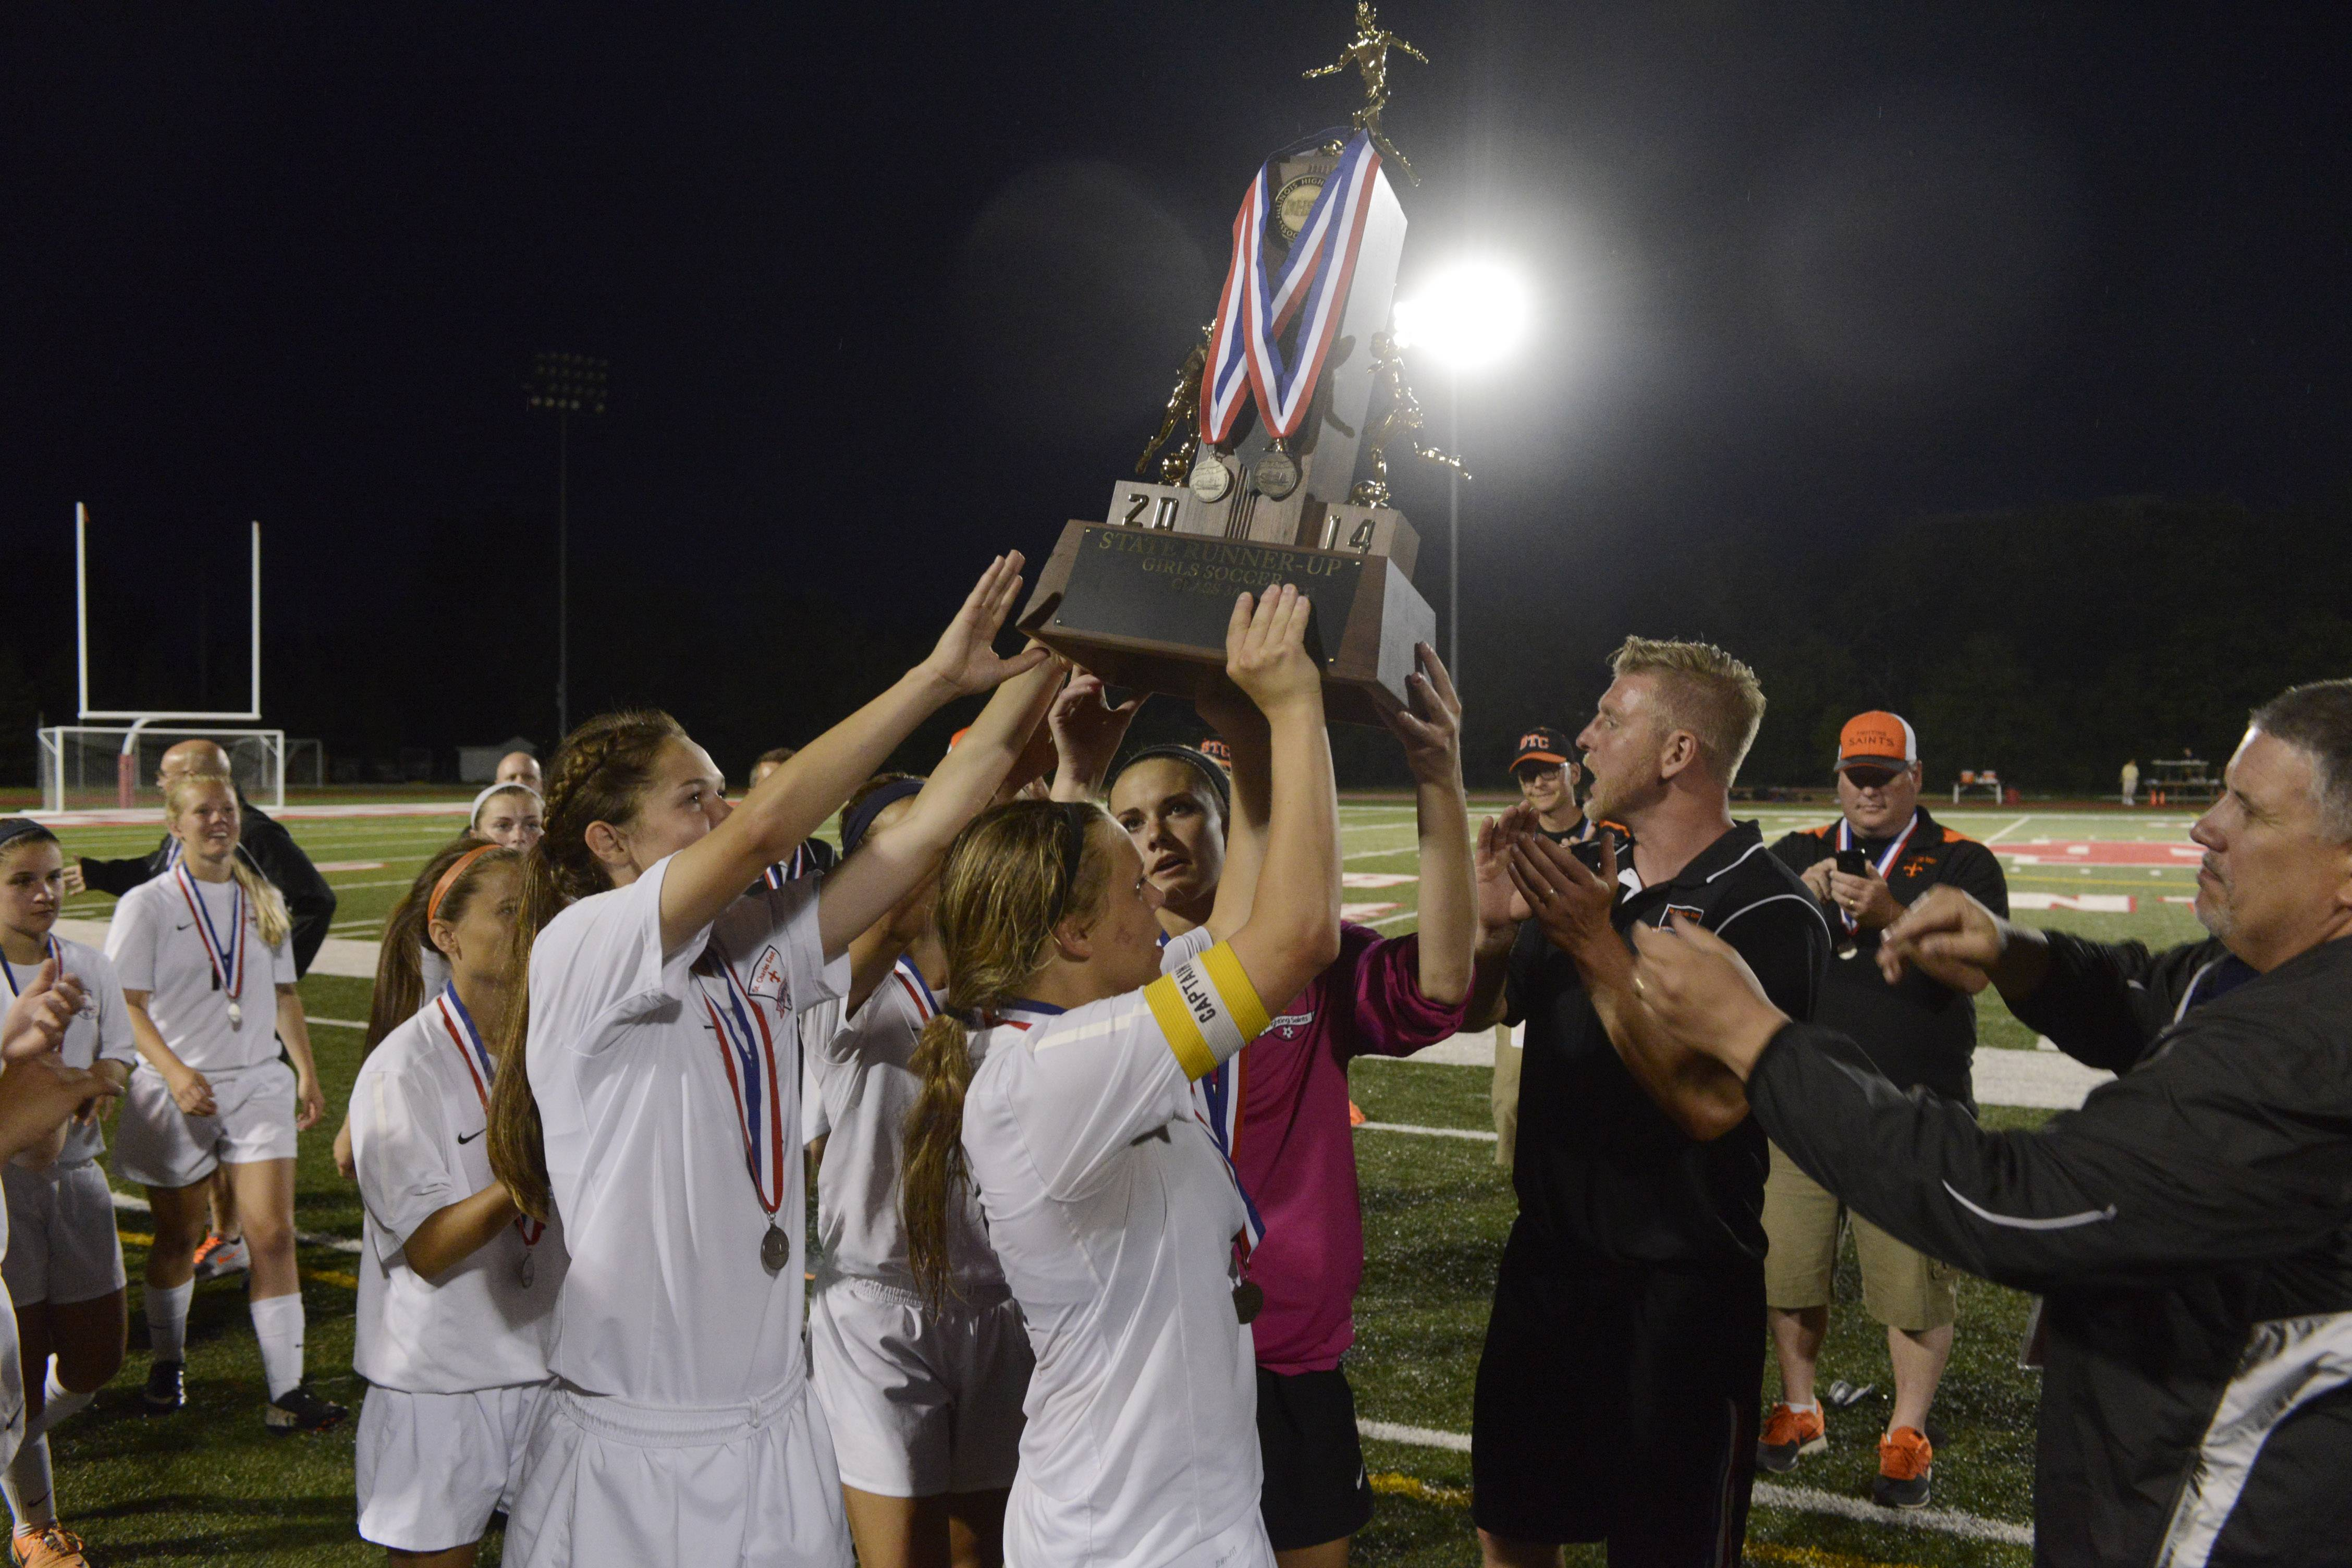 St. Charles East captains accept their team's second place trophy following their 1-0 loss to New Trier during the girls soccer Class 3A state final at North Central College in Naperville Saturday.